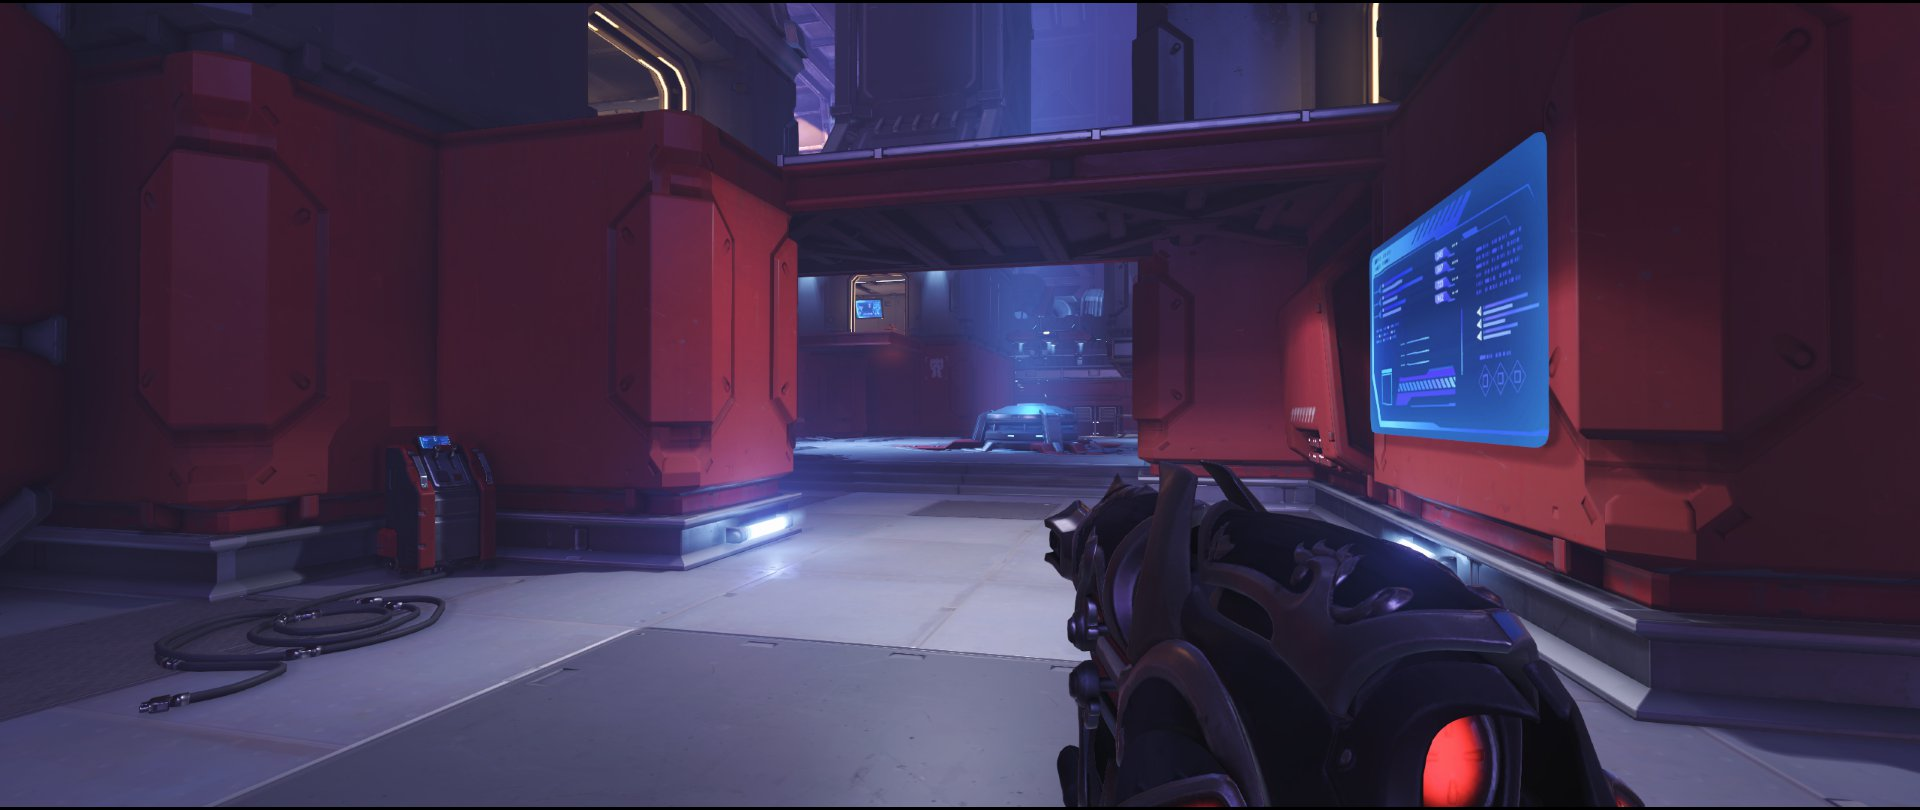 Coast ground level defense sniping spot Widowmaker Volskaya Industries Overwatch.jpg